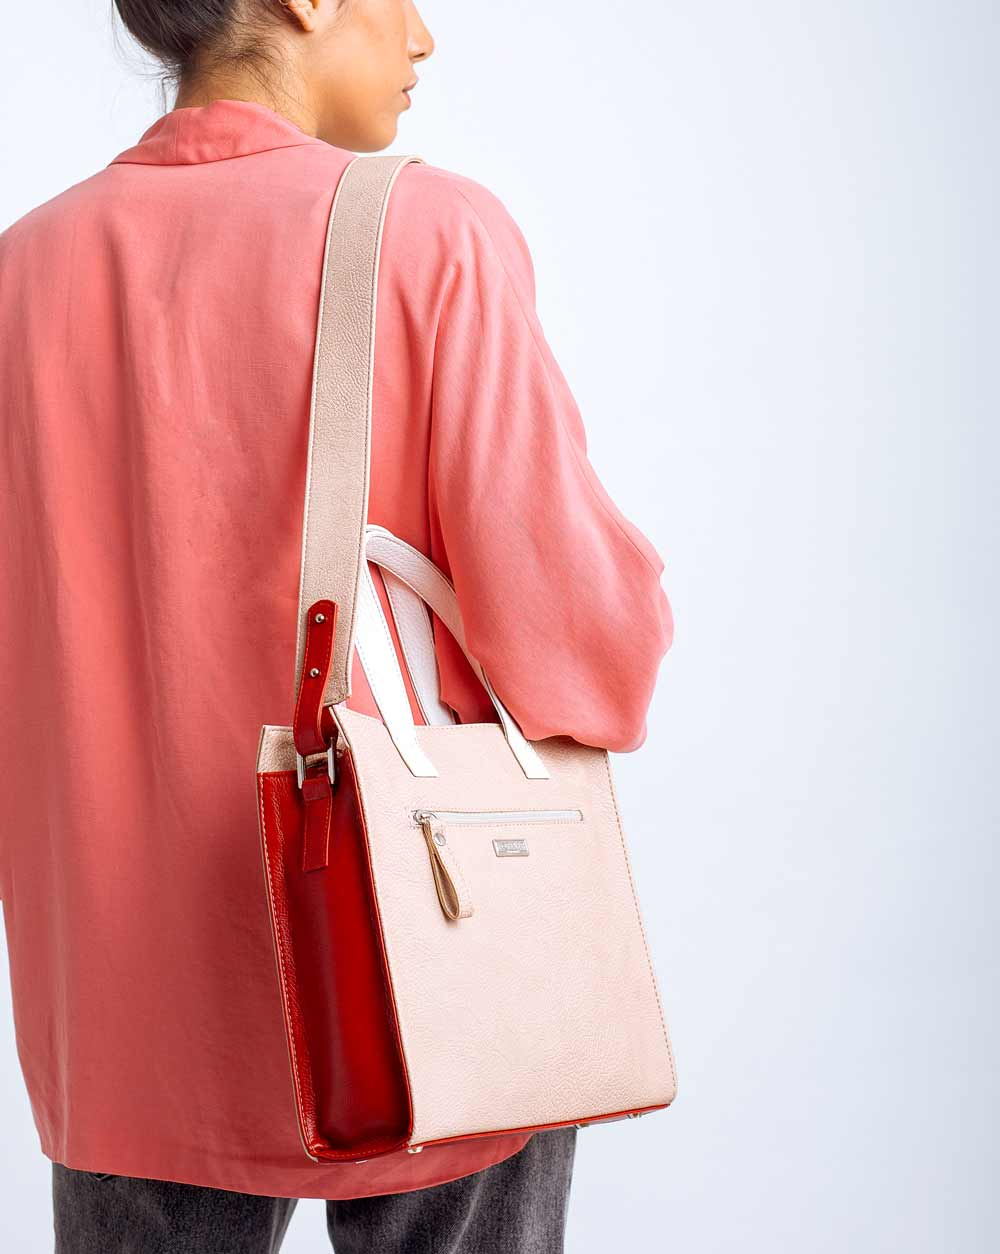 MALA SHOULDER BAG BOLSO READY RD - 10